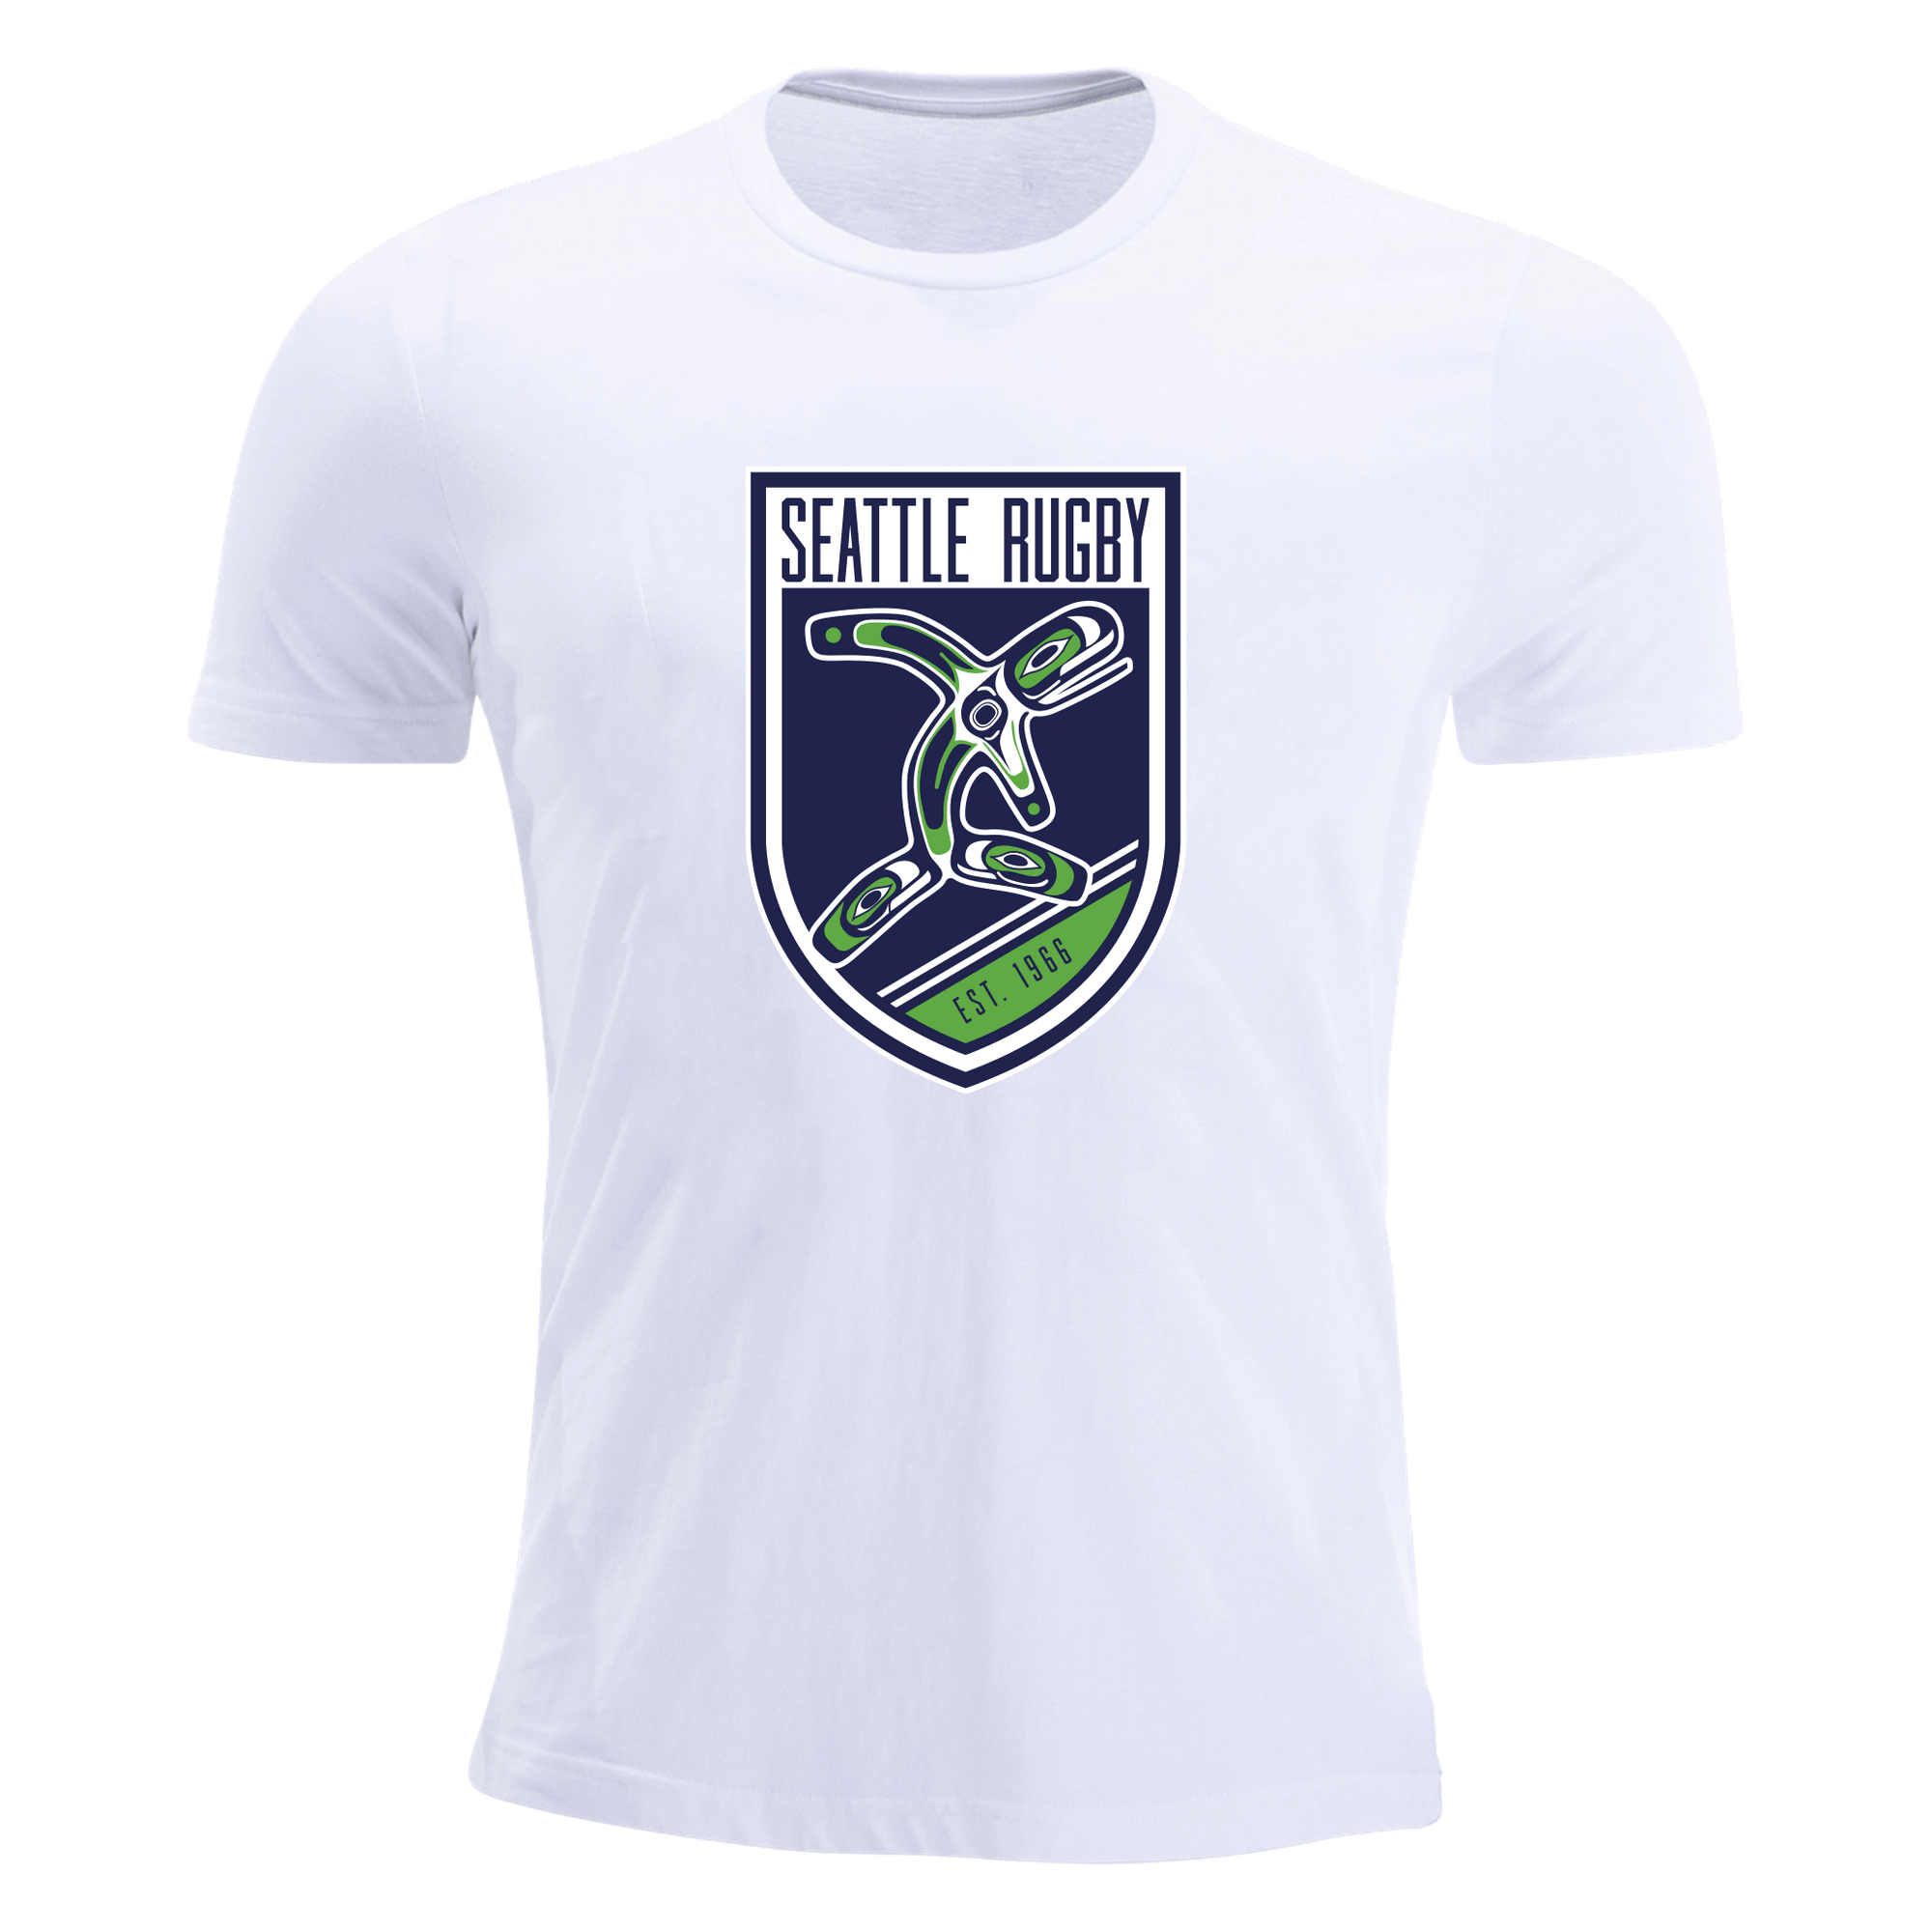 Seattle Rugby Club Premiership T-Shirt